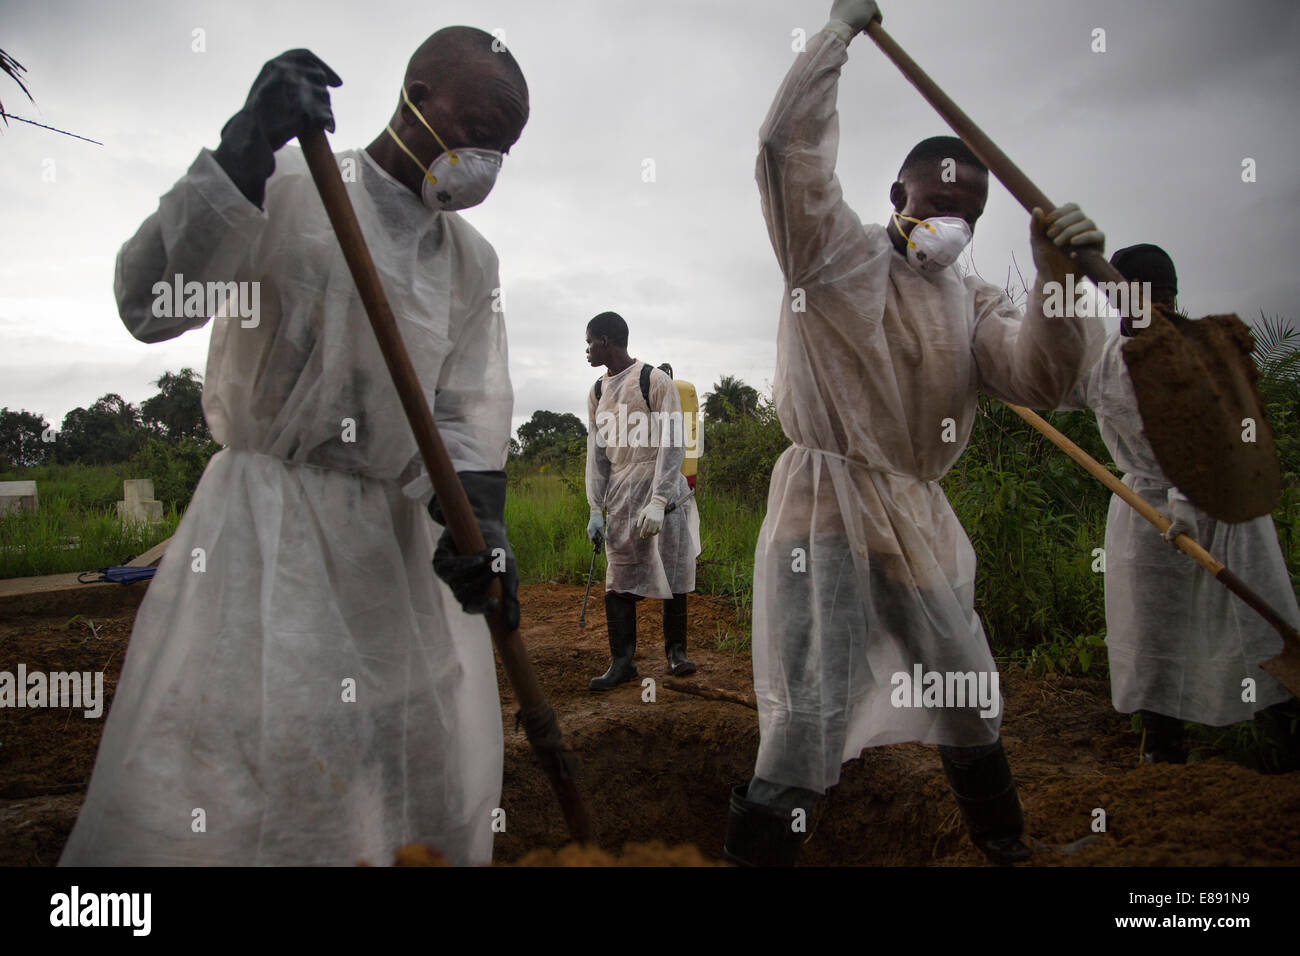 Body removal team buries an Ebola victim in Unification Town, Liberia 2014-08-30 11:39:48.043 - Stock Image